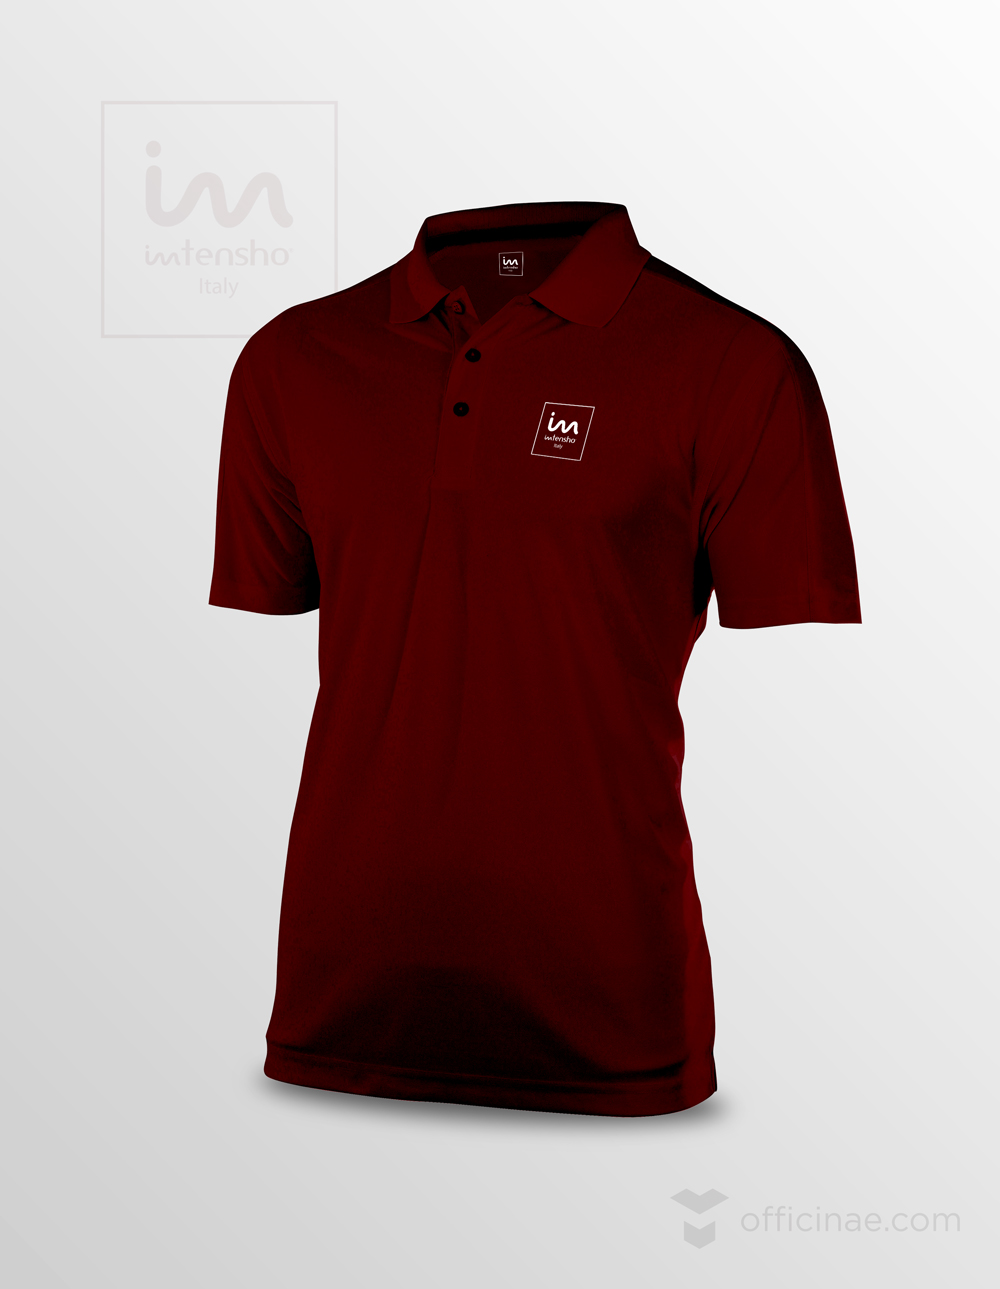 ntensho tecnoblend officinae agenzia lean digital marketing comunicazione matera milano tshirt con logo